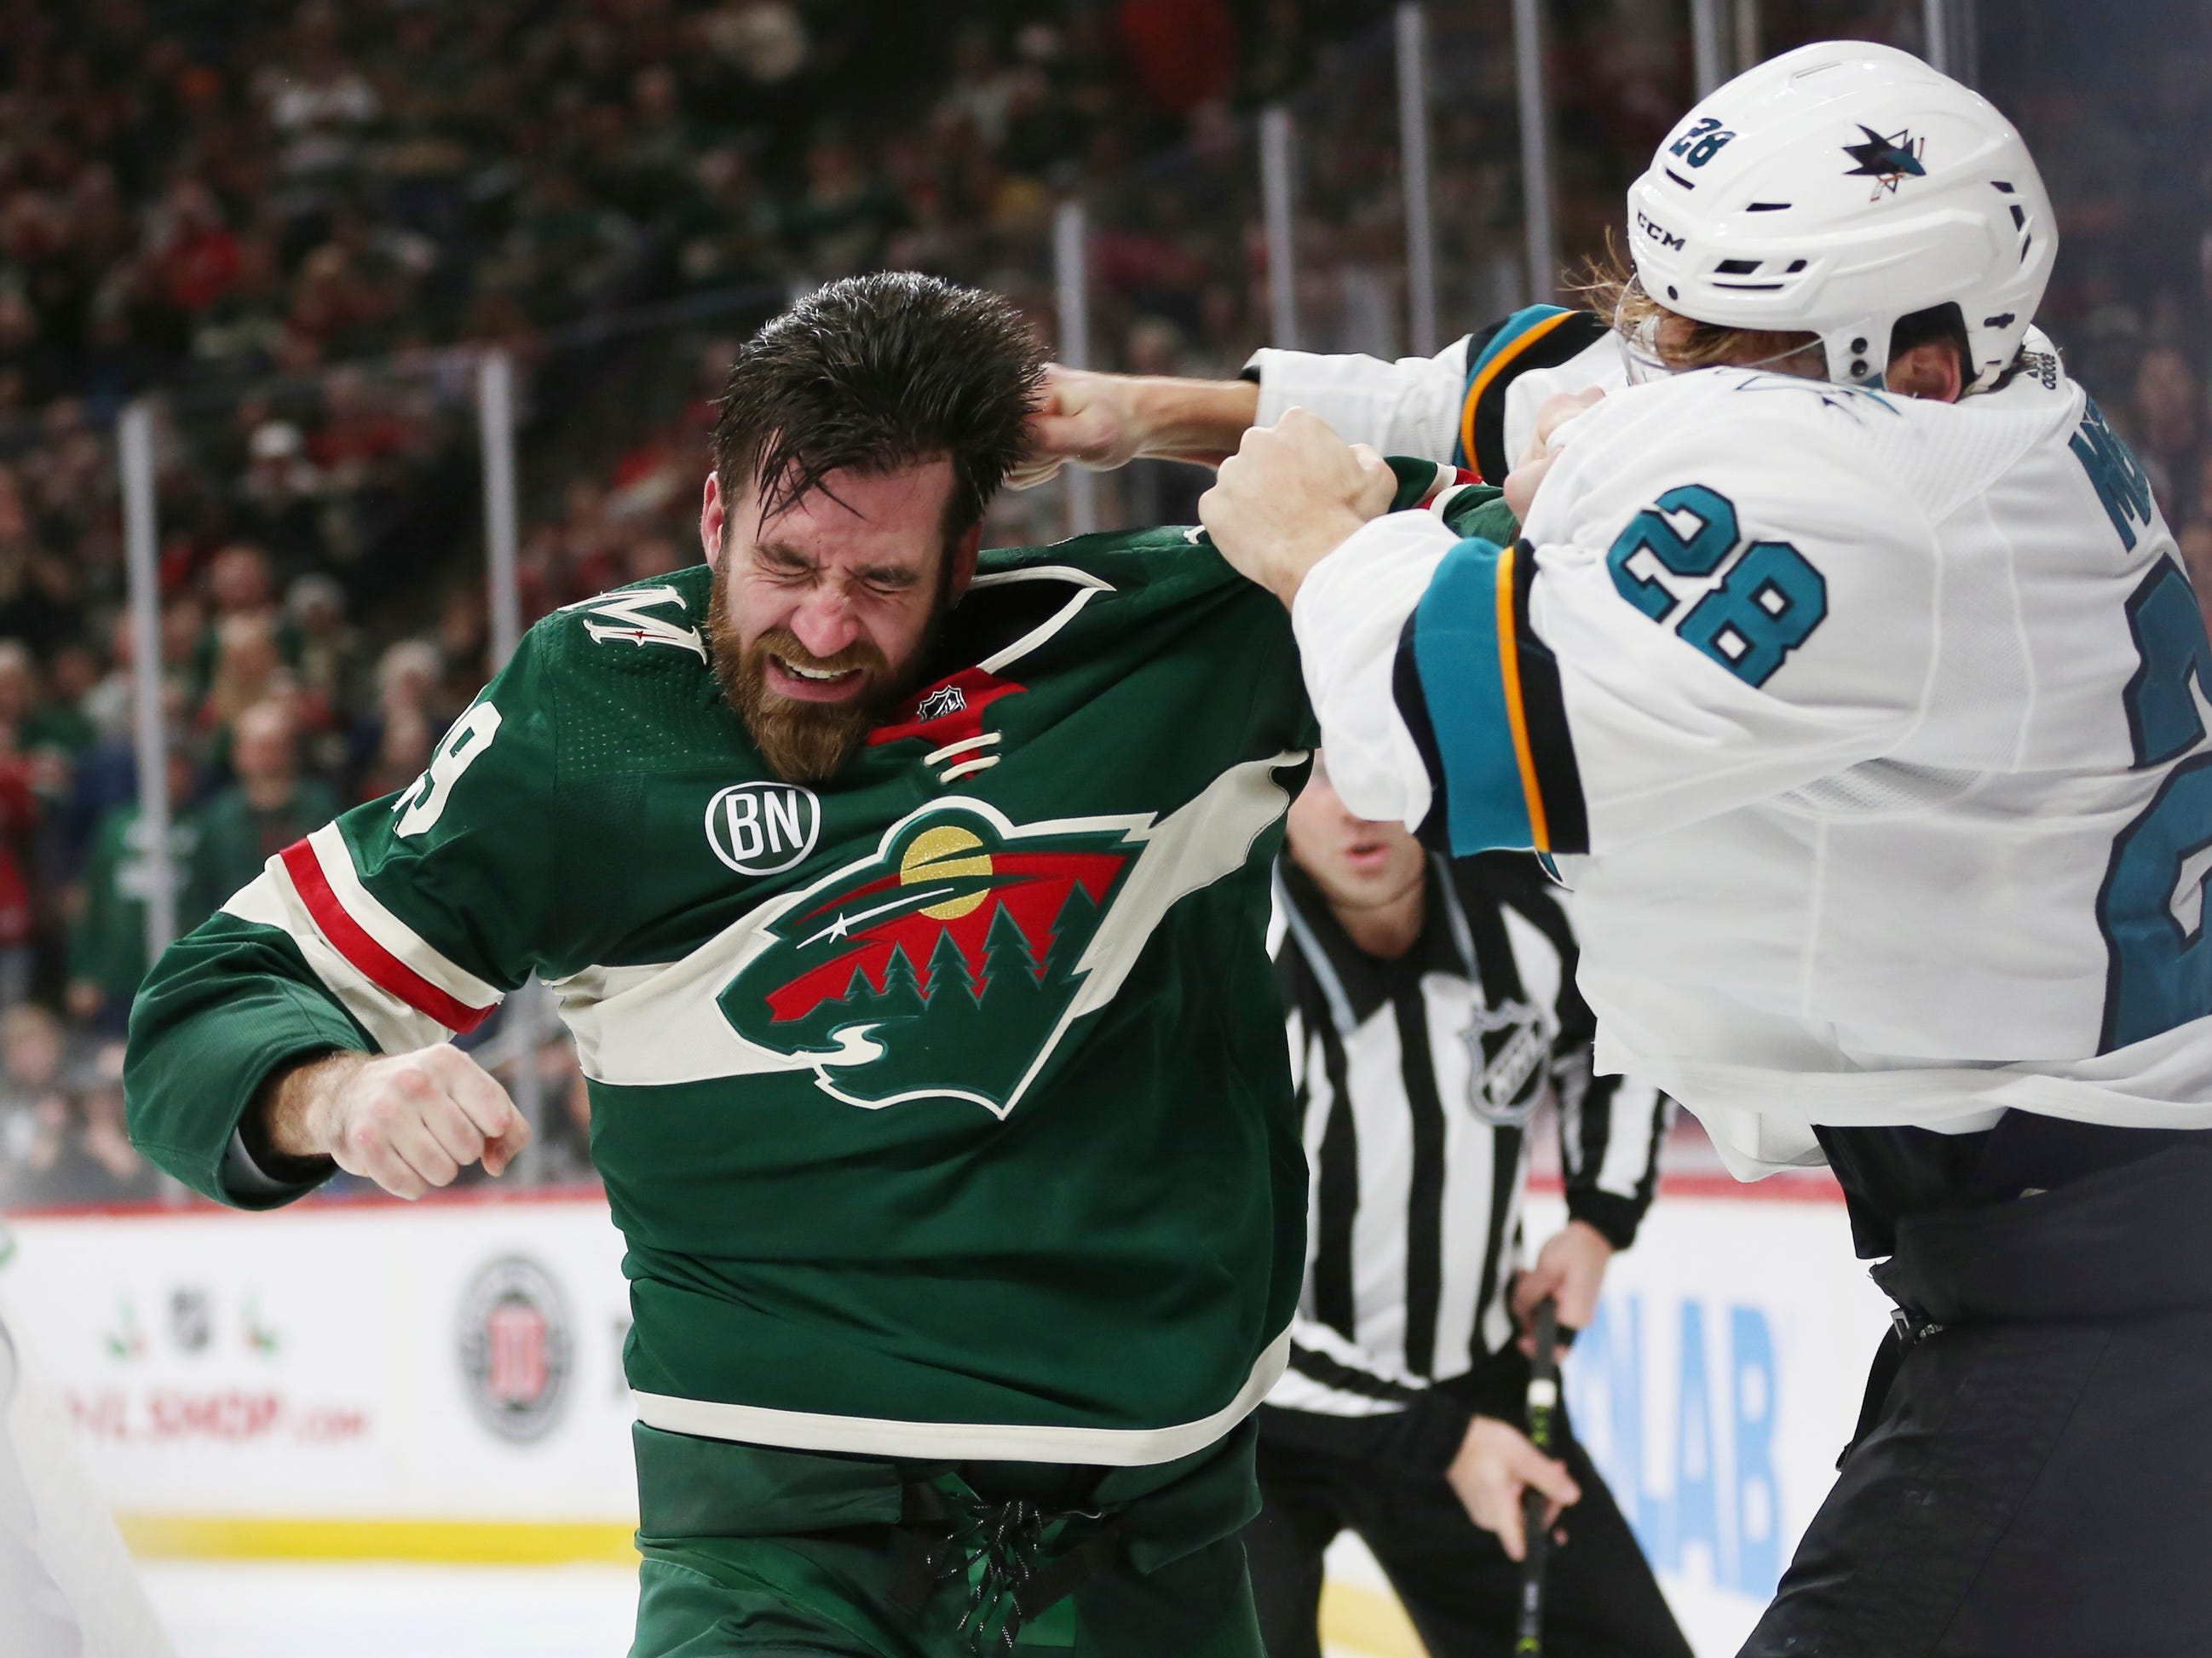 Dec. 18: Minnesota Wild's Greg Pateryn vs. San Jose Sharks' Timo Meier.